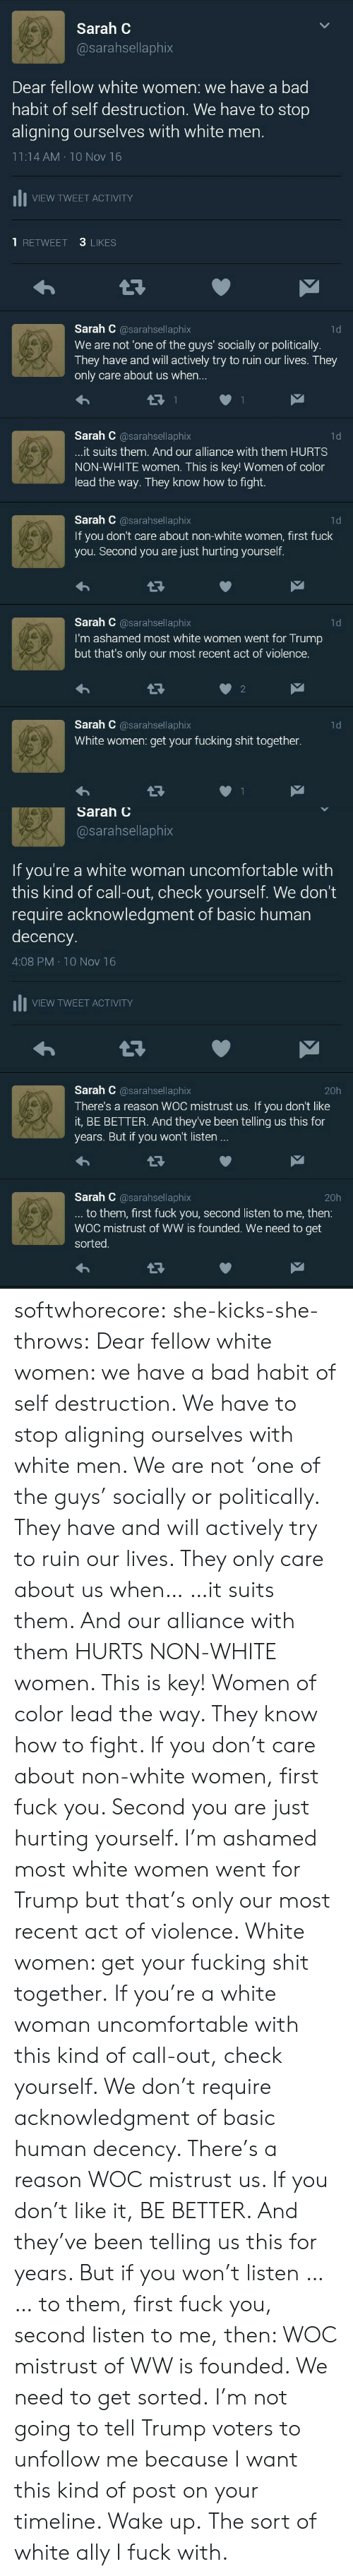 Check yourself: Sarah C  @sarahsellaphix  Dear fellow white women: we have a bad  habit of self destruction. We have to stop  aligning ourselves with white men.  11:14 AM 10 Nov 16  VIEW TWEET ACTIVITY  3 LIKES  1 RETWEET  Sarah C @sarahsellaphix  We are not 'one of the guys' socially or politically.  They have and will actively try to ruin our lives.. They  only care about us whe...  1d  Sarah C @sarahsellaphix  1d  ...it suits them. And our alliance with them HURTS  NON-WHITE women. This is key! Women of color  lead the way. They know how to fight.   Sarah C @sarahsellaphix  If you don't care about non-white women, first fuck  you. Second you are just hurting yourself.  1d  Sarah C @sarahsellaphix  I'm ashamed most white women went for Trump  but that's only our most recent act of violence.  1d  2  Sarah C @sarahsellaphix  1d  White women: get your fucking shit together.   Sarah C  @sarahsellaphix  If you're a white woman uncomfortable with  this kind of call-out, check yourself. We don't  require acknowledgment of basic human  decency.  4:08 PM 10 Nov 16  VIEW TWEET ACTIVITY  Sarah C @sarahsellaphix  20h  There's a reason WOC mistrust us. If you don't like  it, BE BETTER. And they've been telling us this for  years. But if you won't listen ...  Sarah C @sarahsellaphix  ... to them, first fuck you, second listen to me, then:  WOC mistrust of WW is founded. We need to get  20h  sorted. softwhorecore:  she-kicks-she-throws:  Dear fellow white women: we have a bad habit of self destruction. We have to stop aligning ourselves with white men. We are not 'one of the guys' socially or politically. They have and will actively try to ruin our lives. They only care about us when… …it suits them.   And our alliance with them HURTS NON-WHITE women. This is key! Women of color lead the way. They know how to fight. If you don't care about non-white women, first fuck you. Second you are just hurting yourself. I'm ashamed most white women went for Trump but that's only our most r